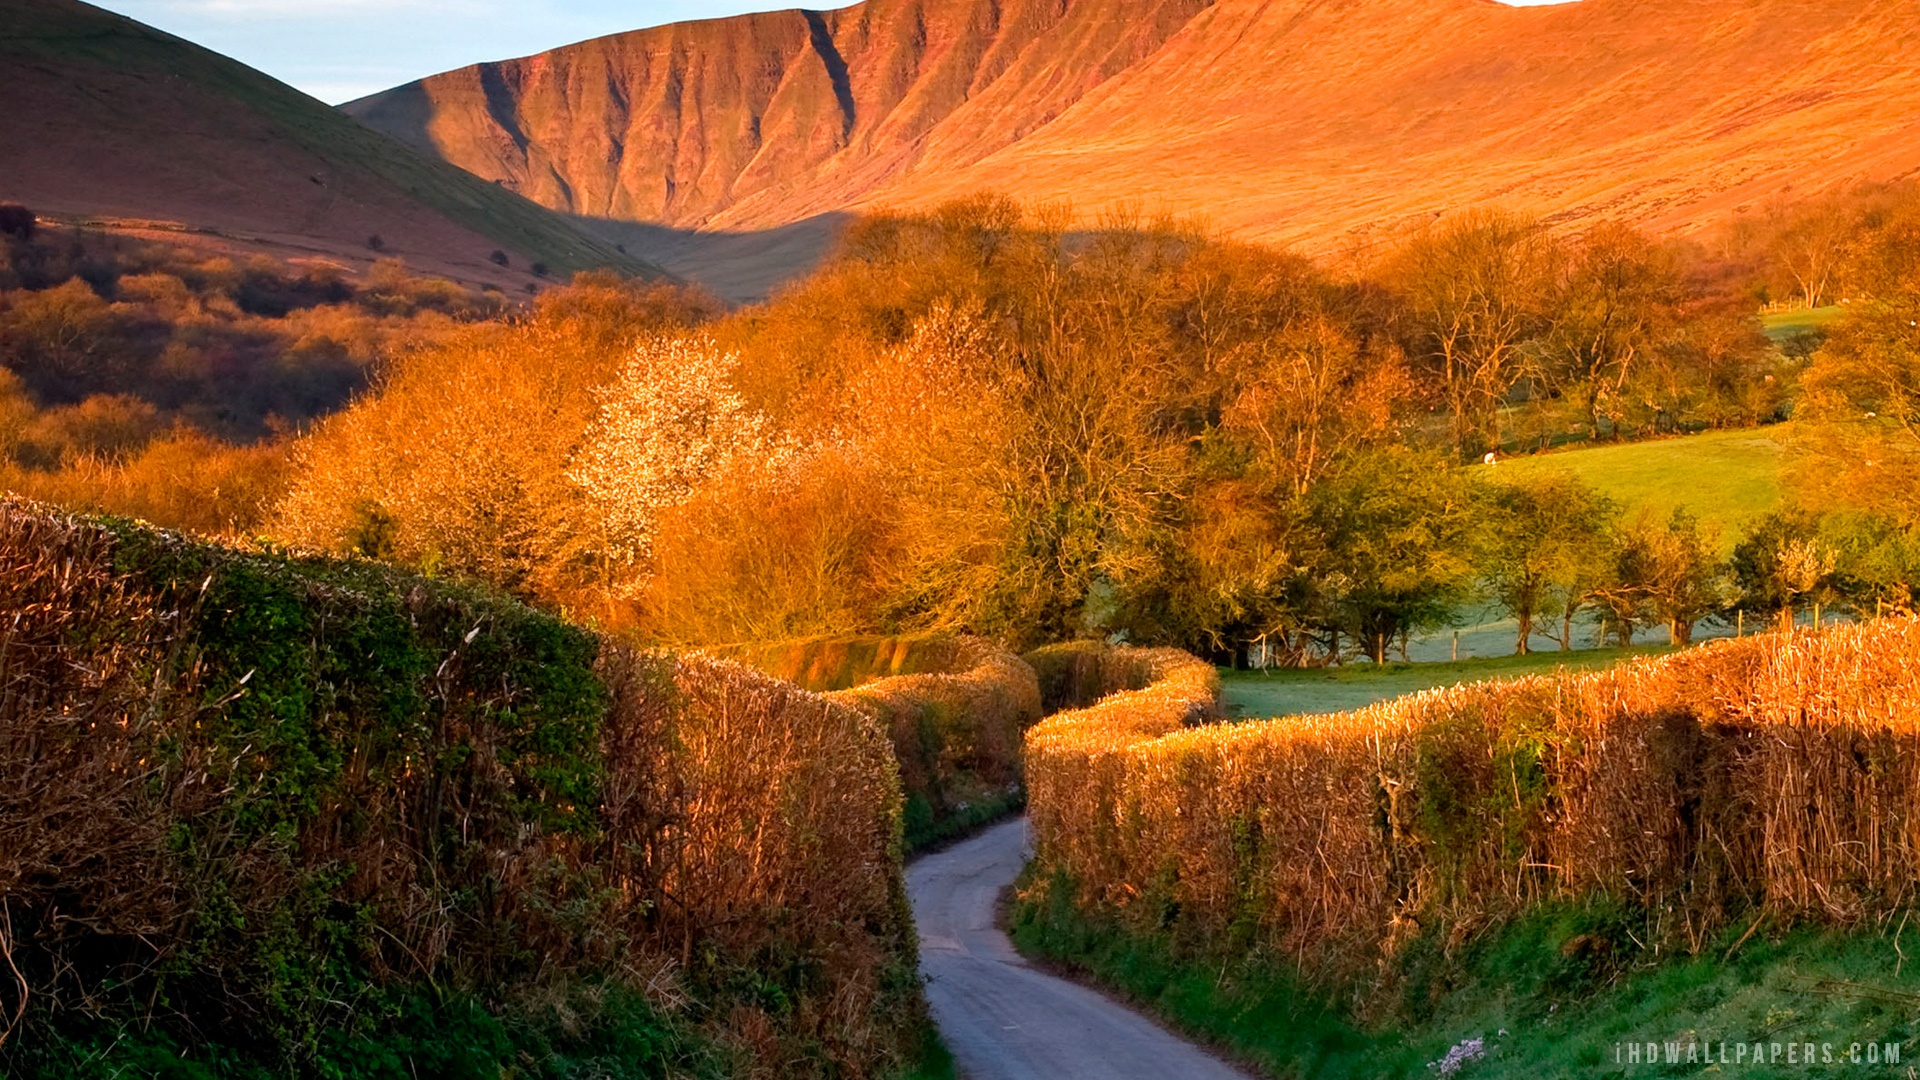 Brecon Beacons Wales UK HD Wallpaper   iHD Wallpapers 1920x1080